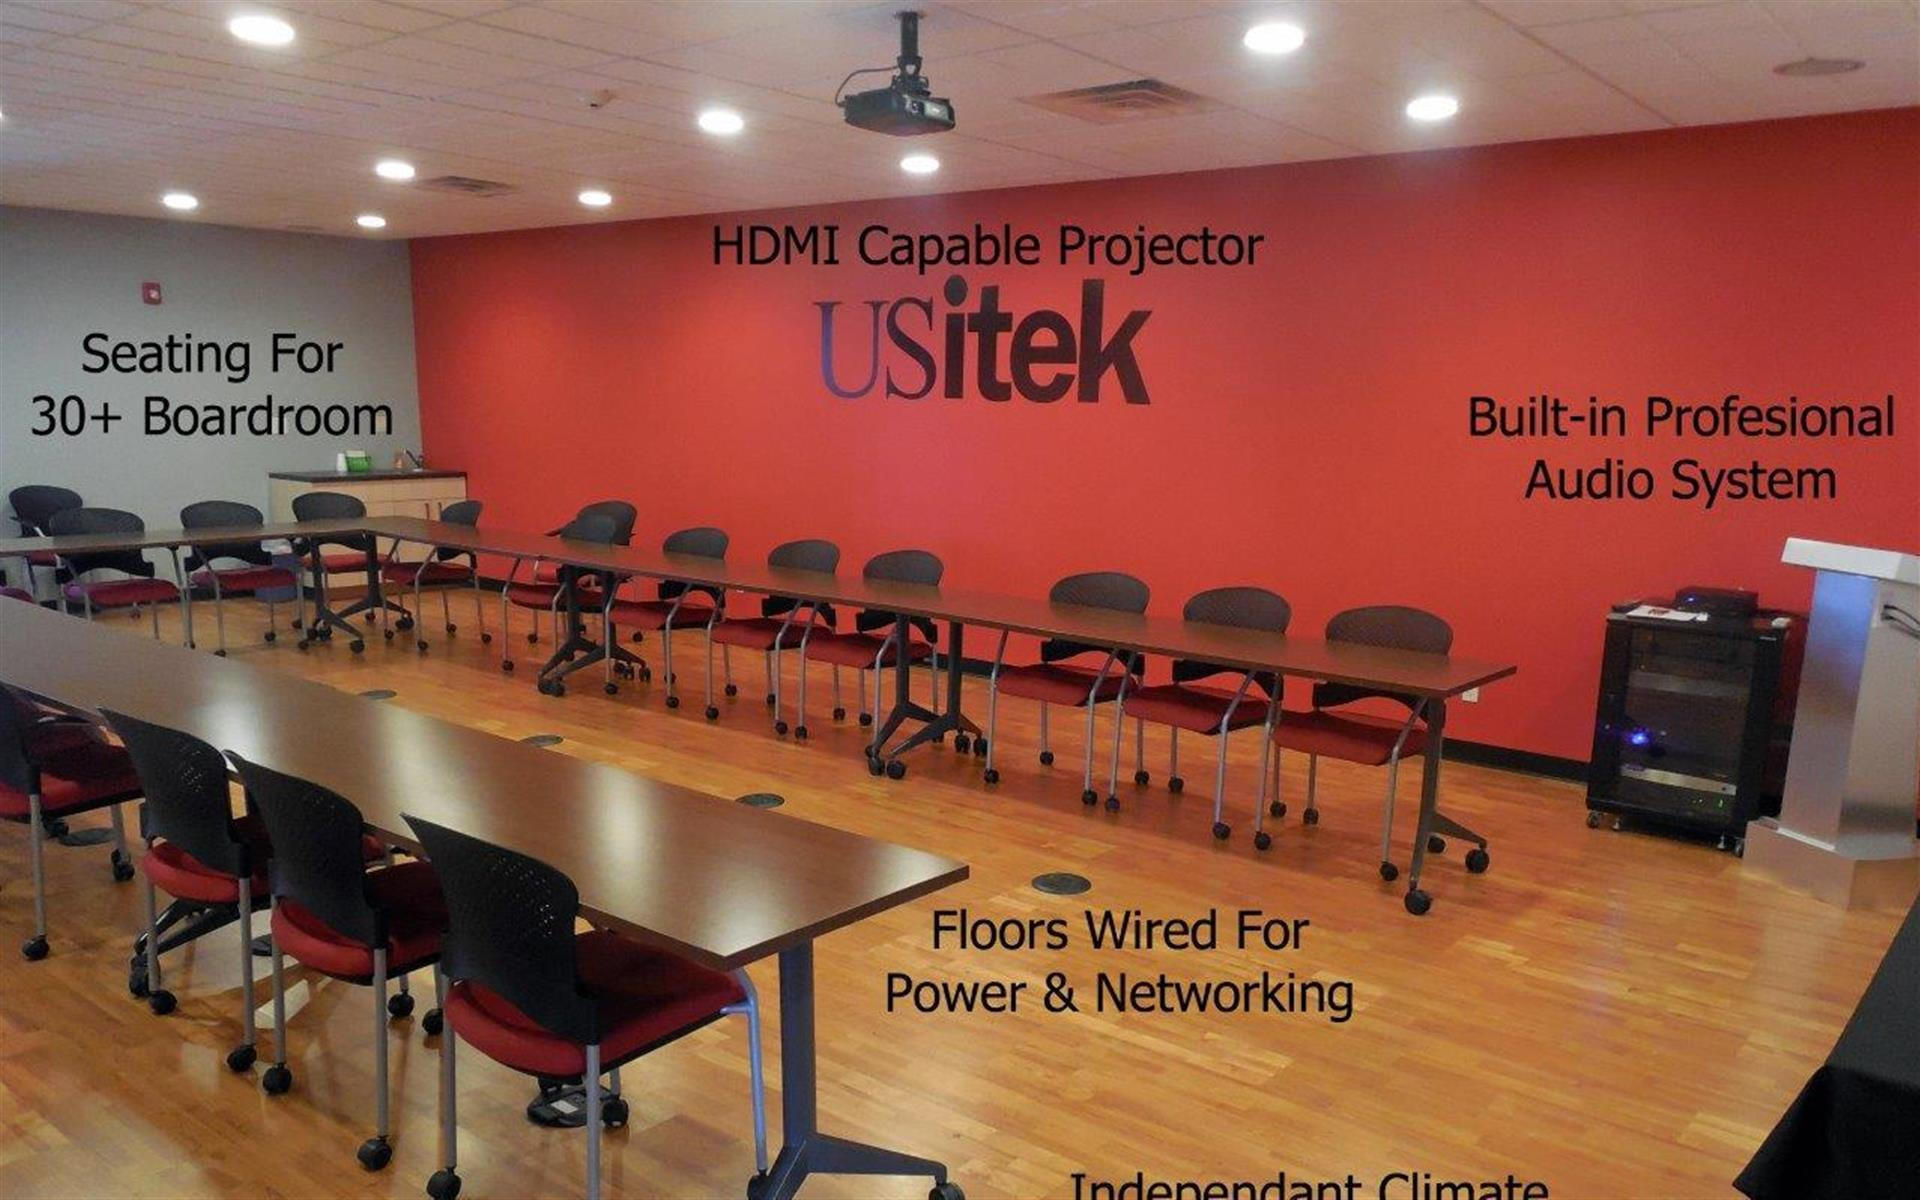 US itek, Inc. - Space to Rent - Conference room accomodating up to 32